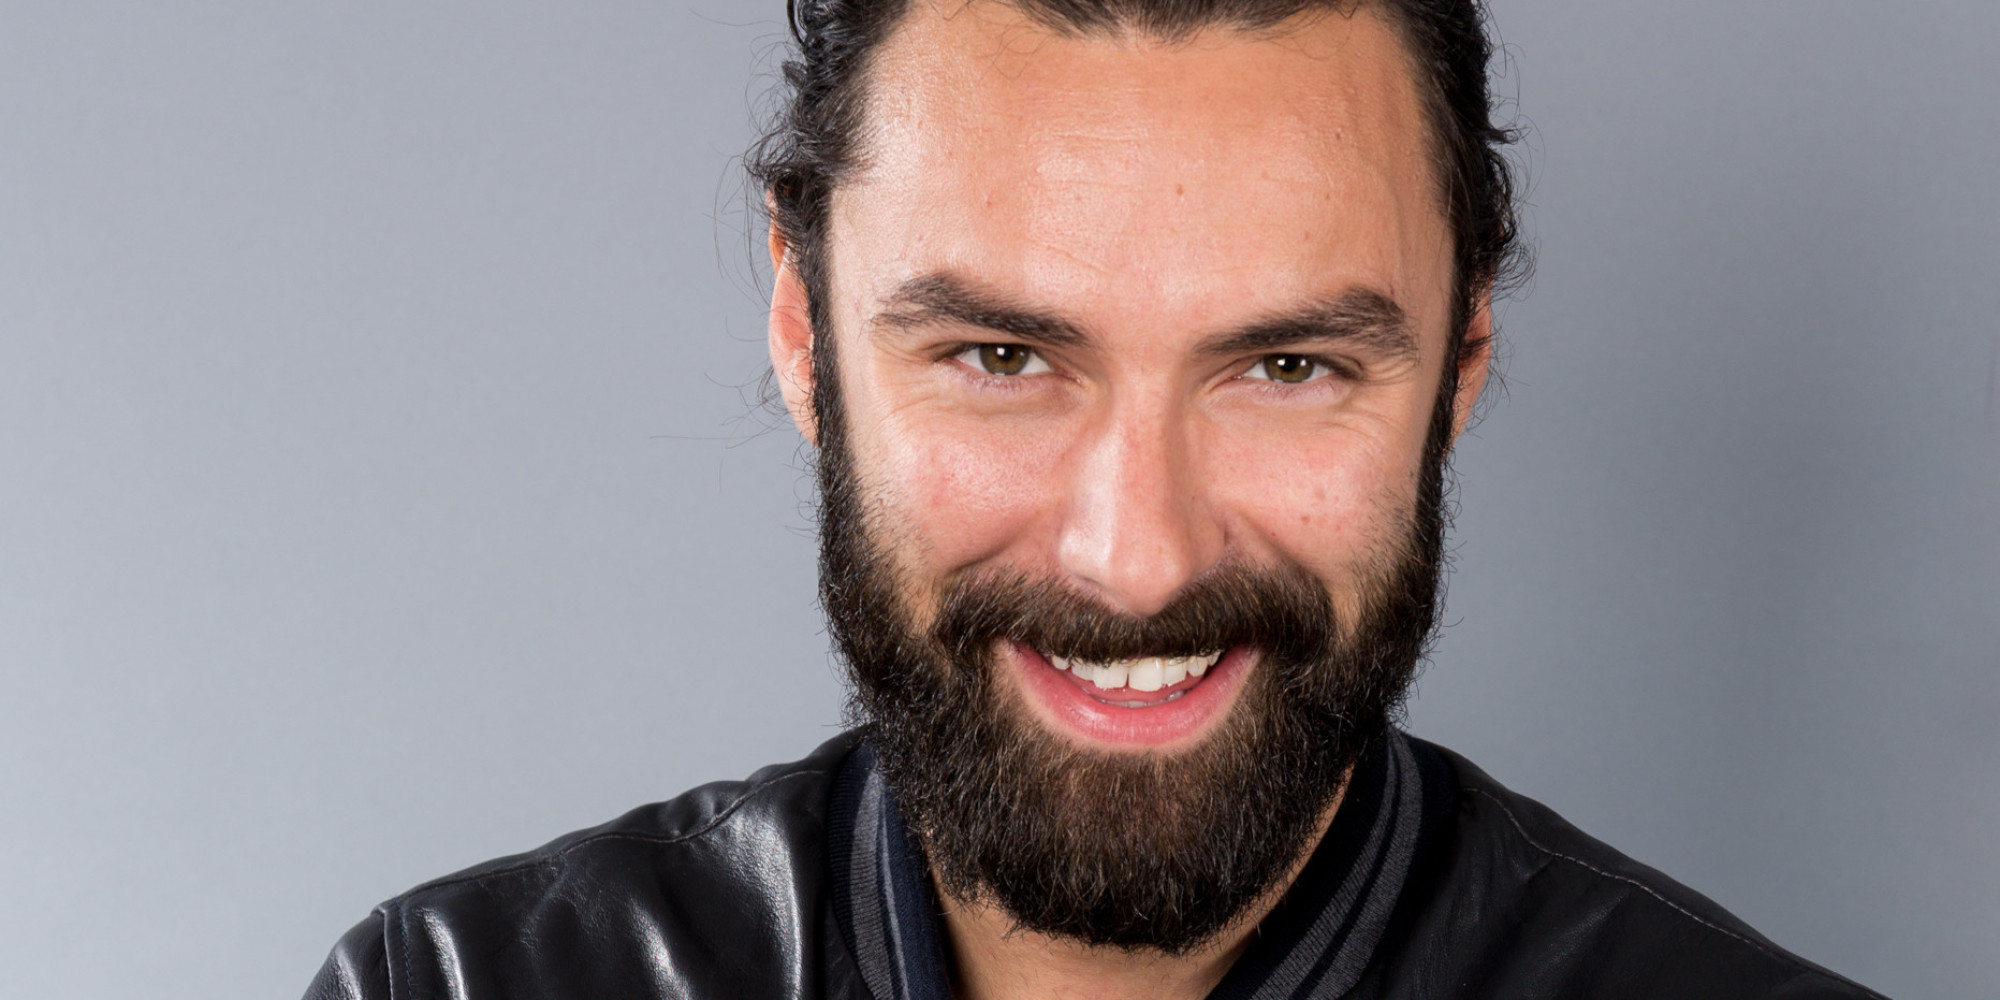 'Poldark' Star Aidan Turner Licensed To Stay Silent Over ... Daniel Craig